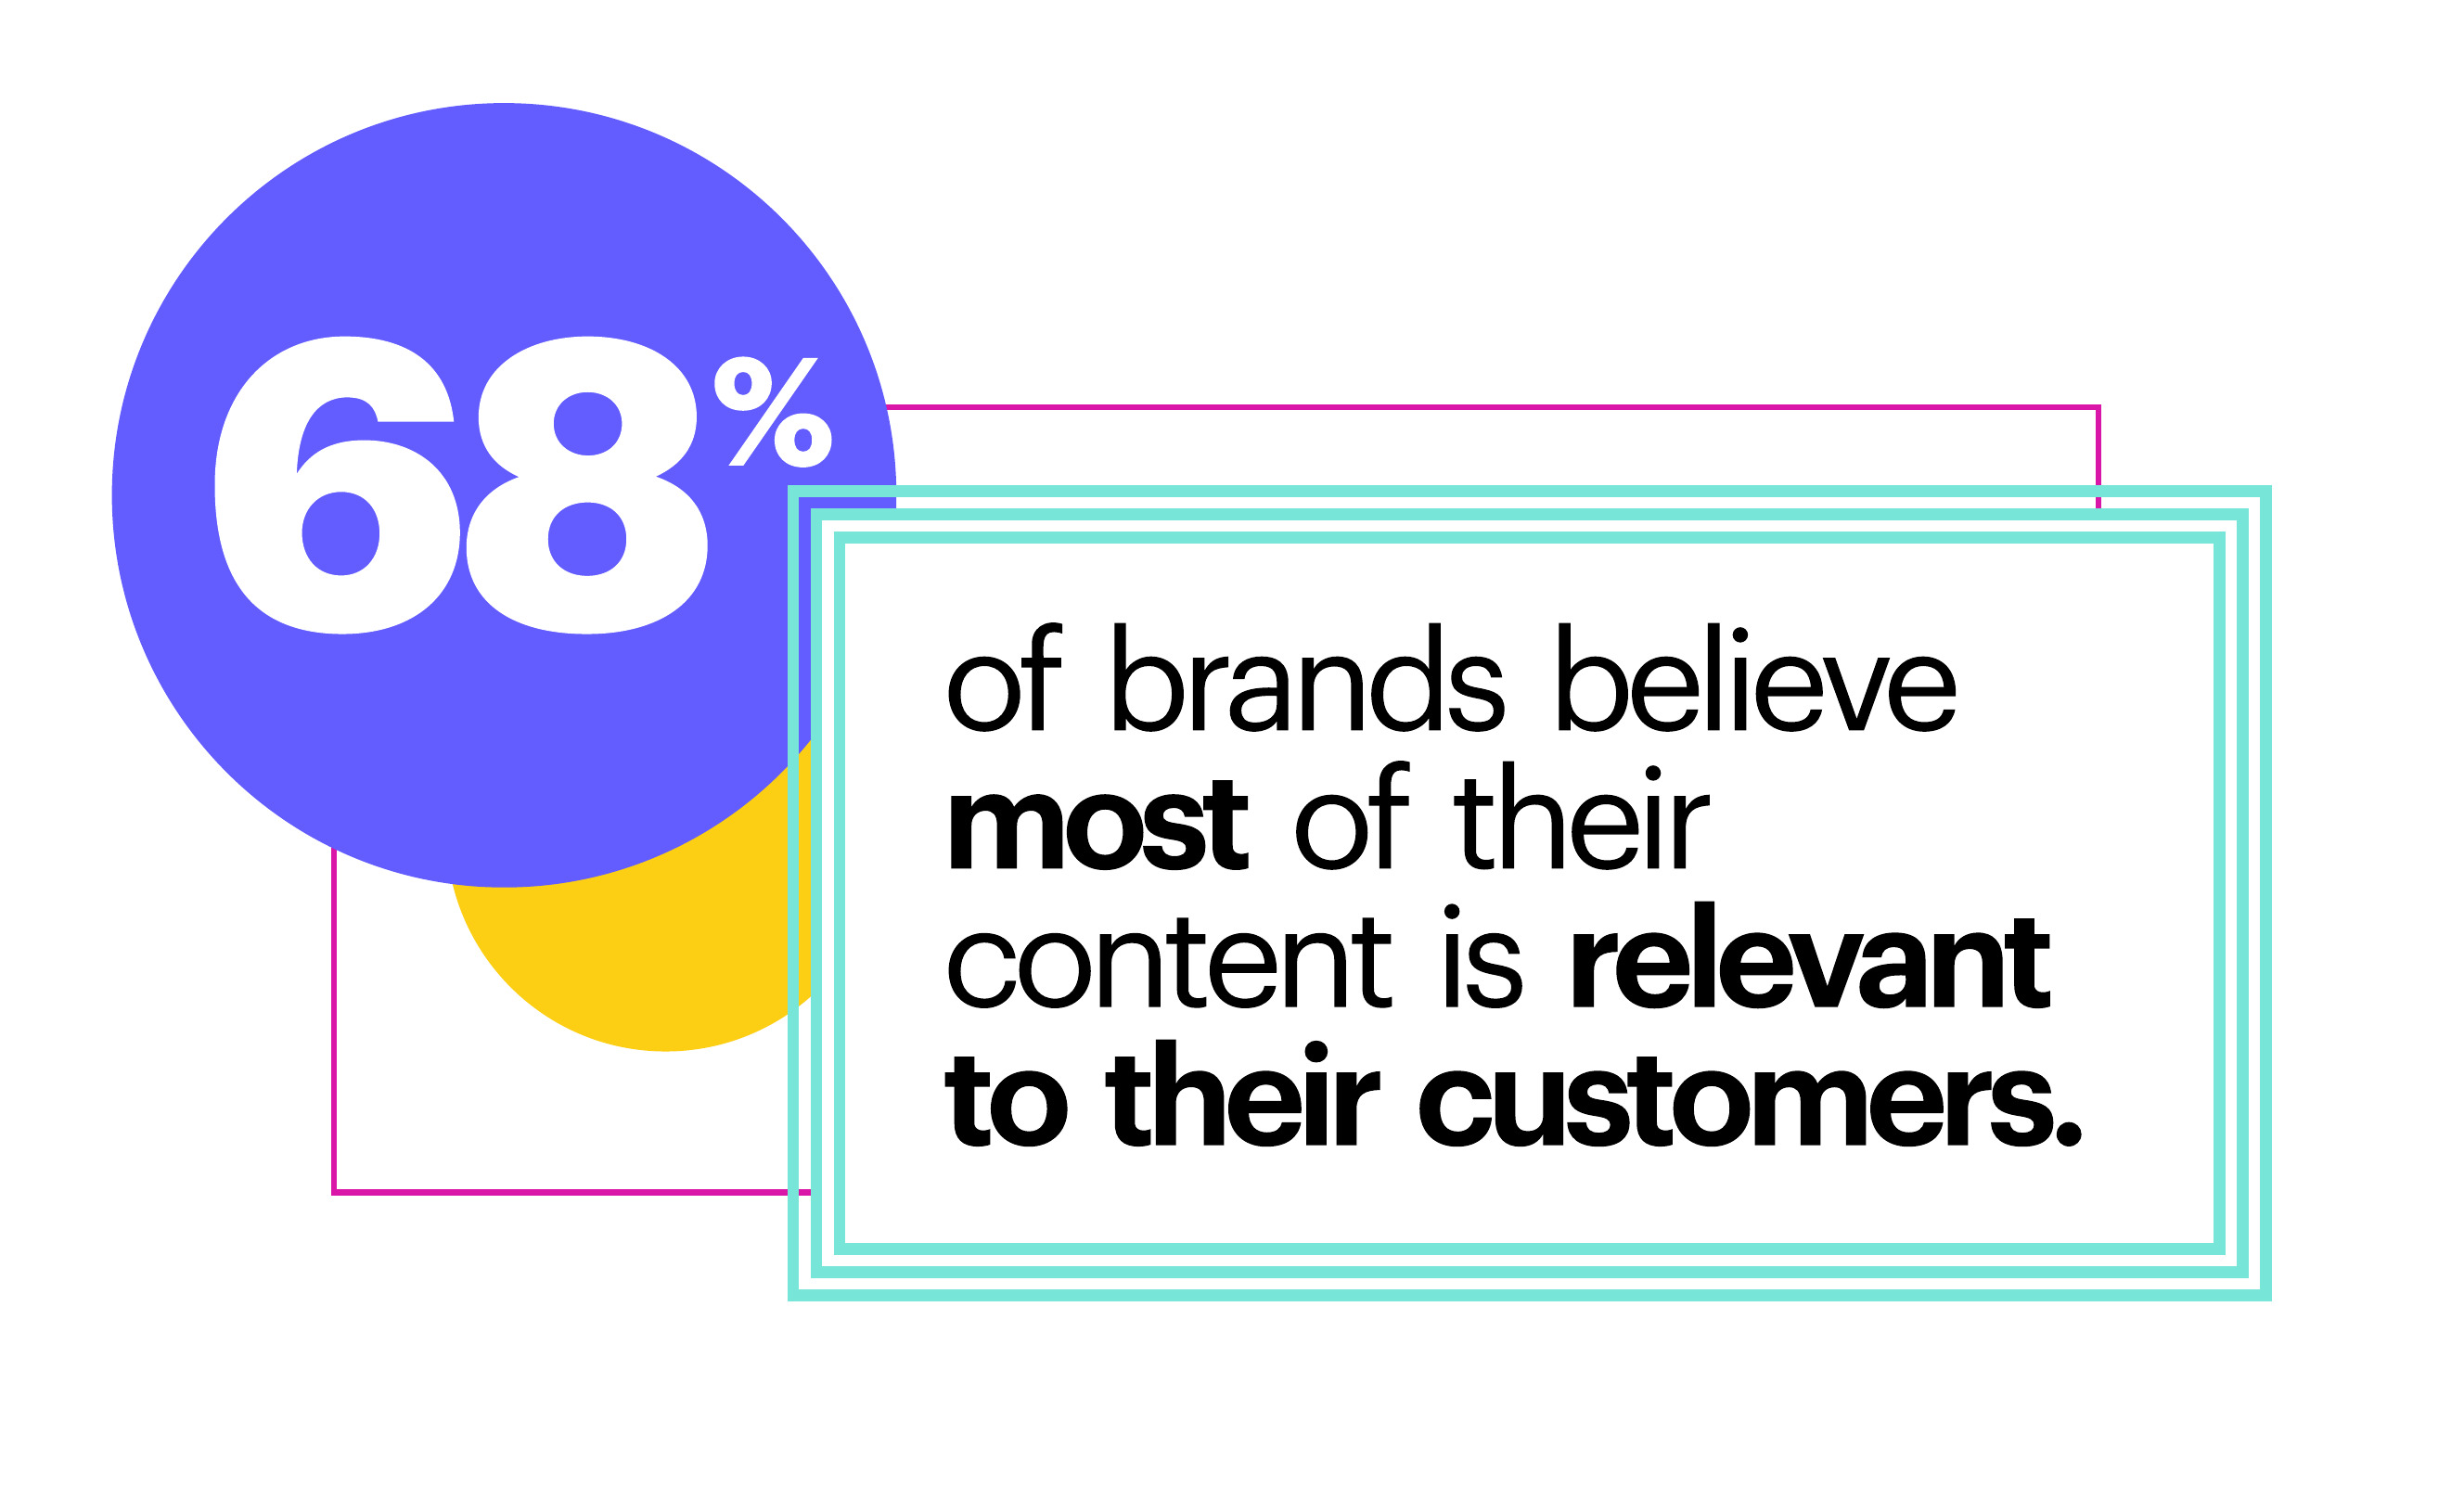 68% of brands believe most of their content is relevant to customers.